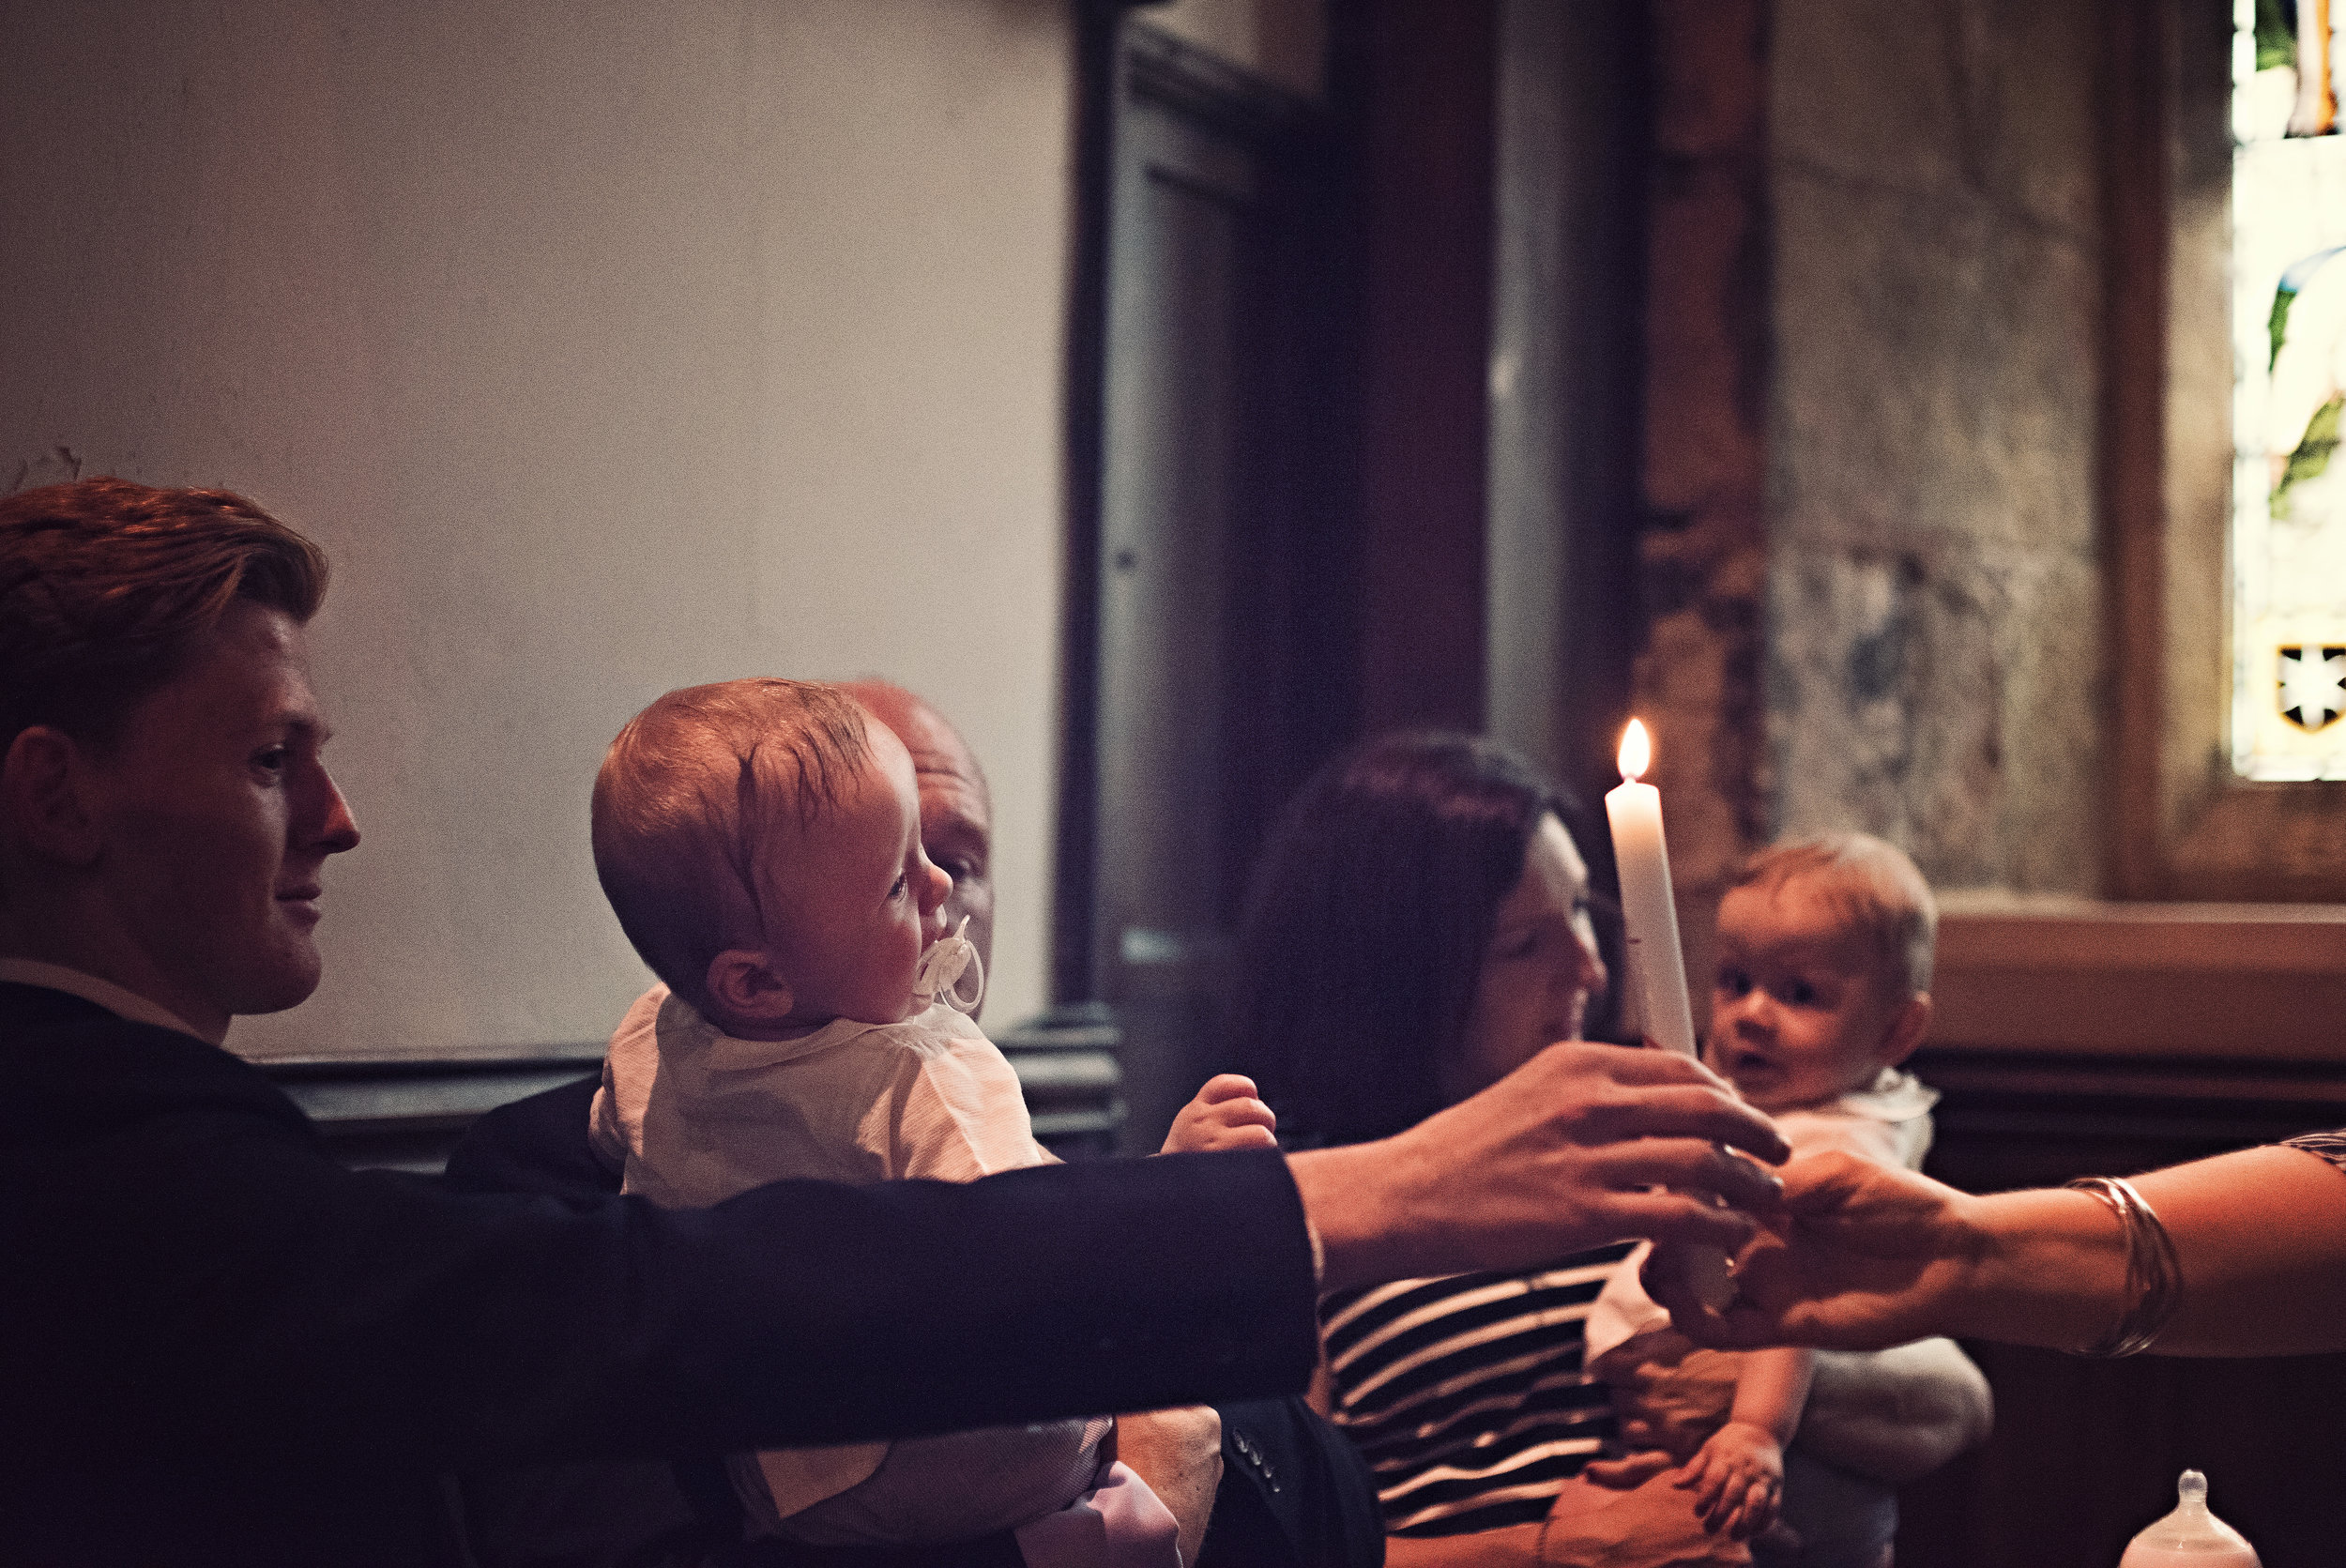 An atmospheric corner with limited natural light offered a challenging shooting condition, but the twins kept themselves entertained by hitting daddy on the head with the hymn sheet throughout!